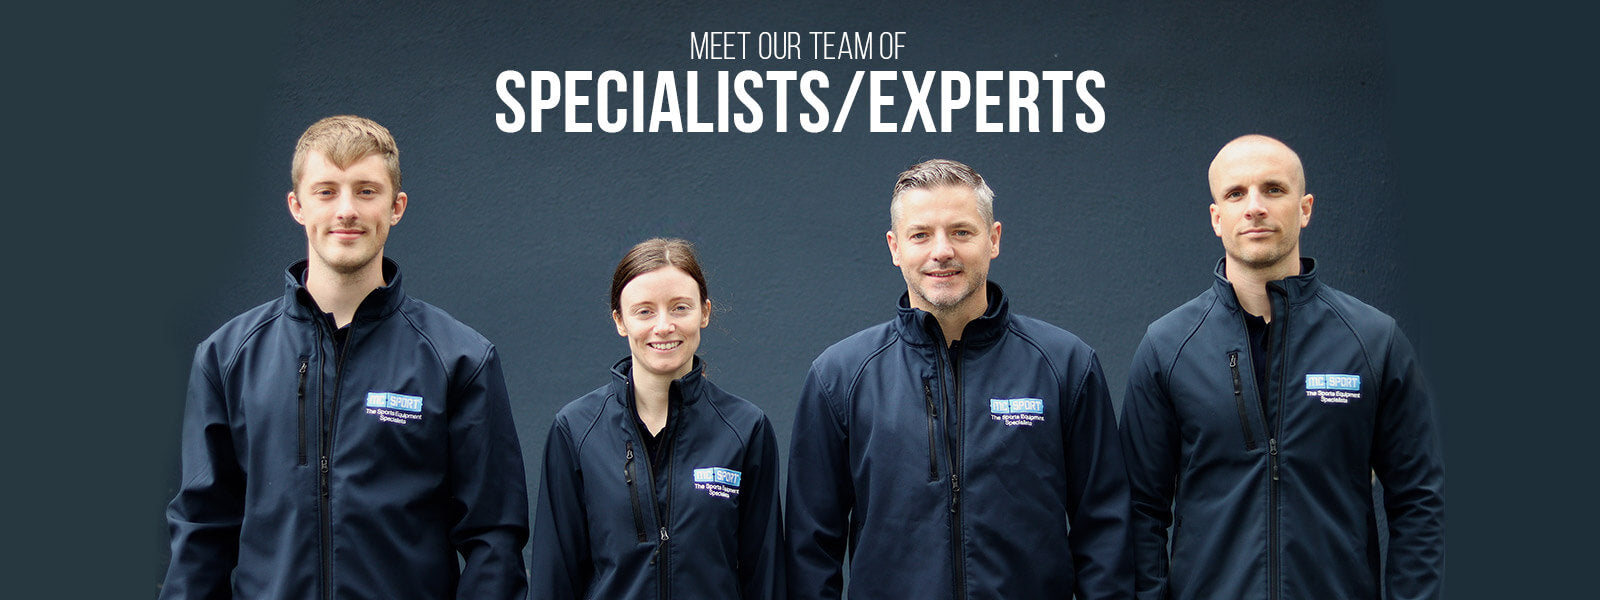 Meet the Experts Image